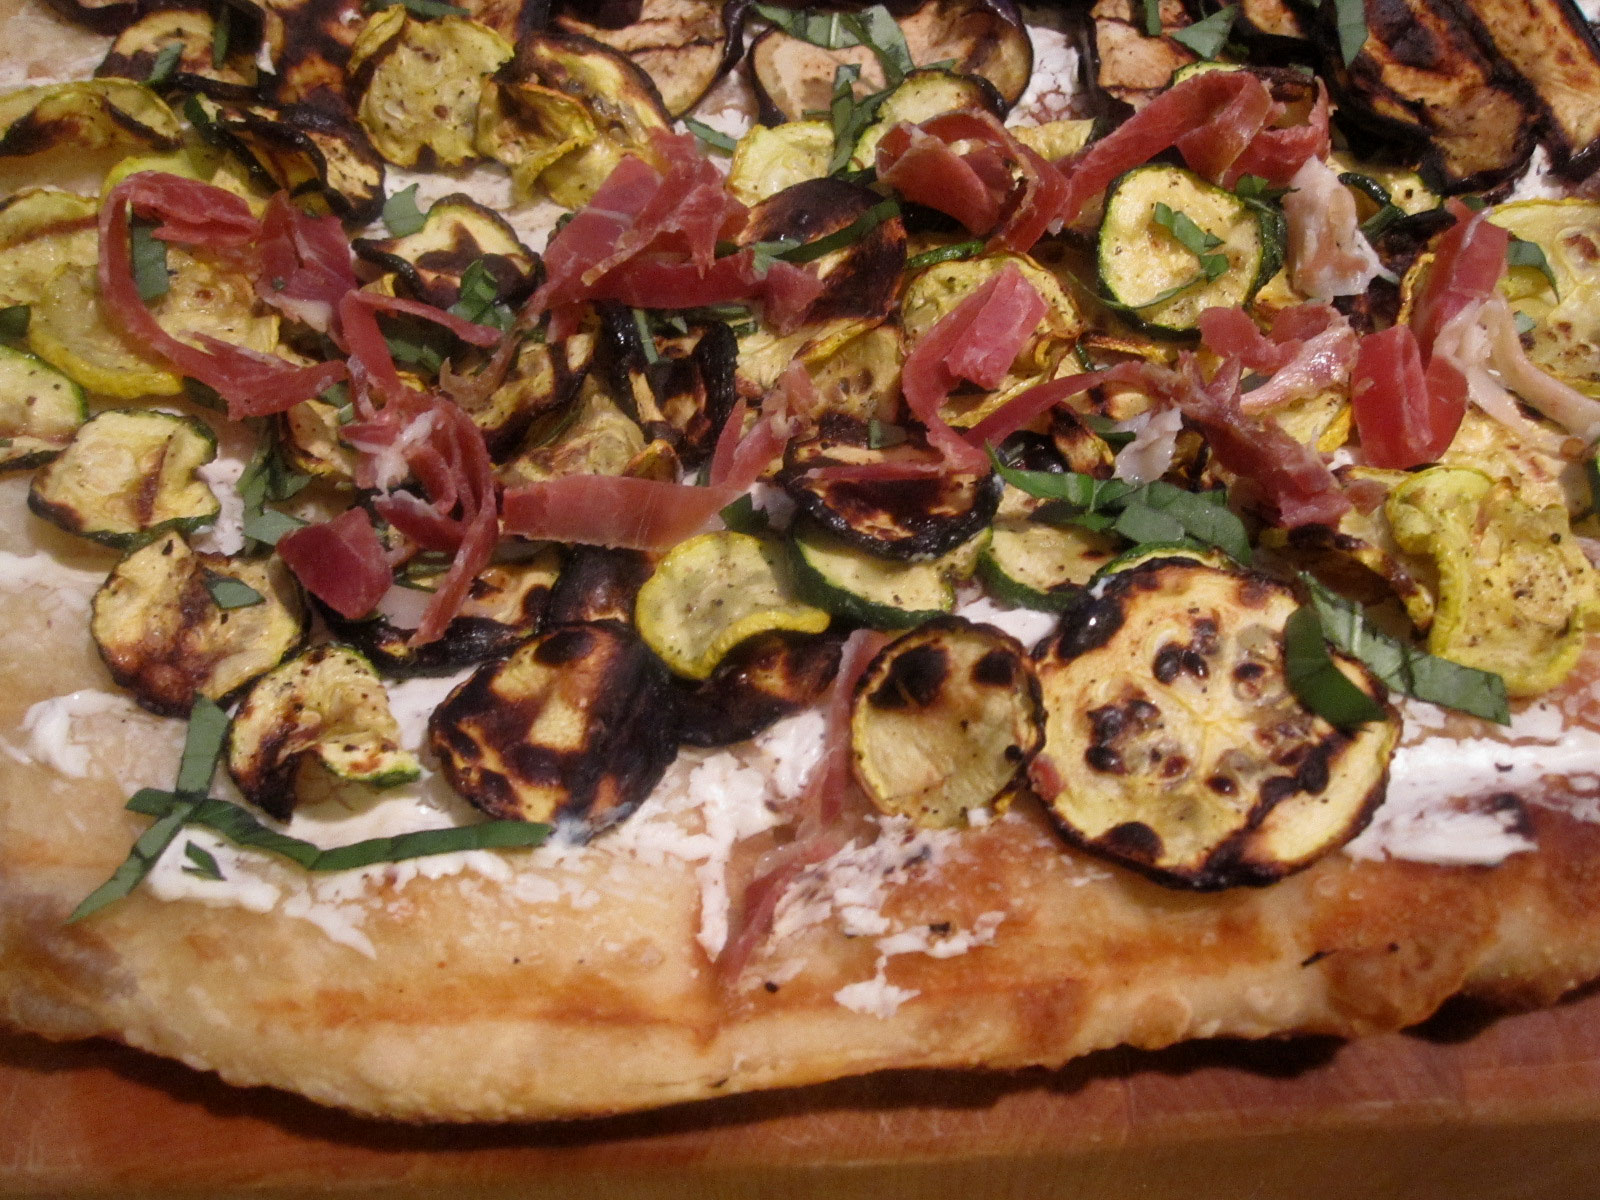 ... Friday Dinner - Grilled Lemony Zucchini and Eggplant Goat Cheese Pizza